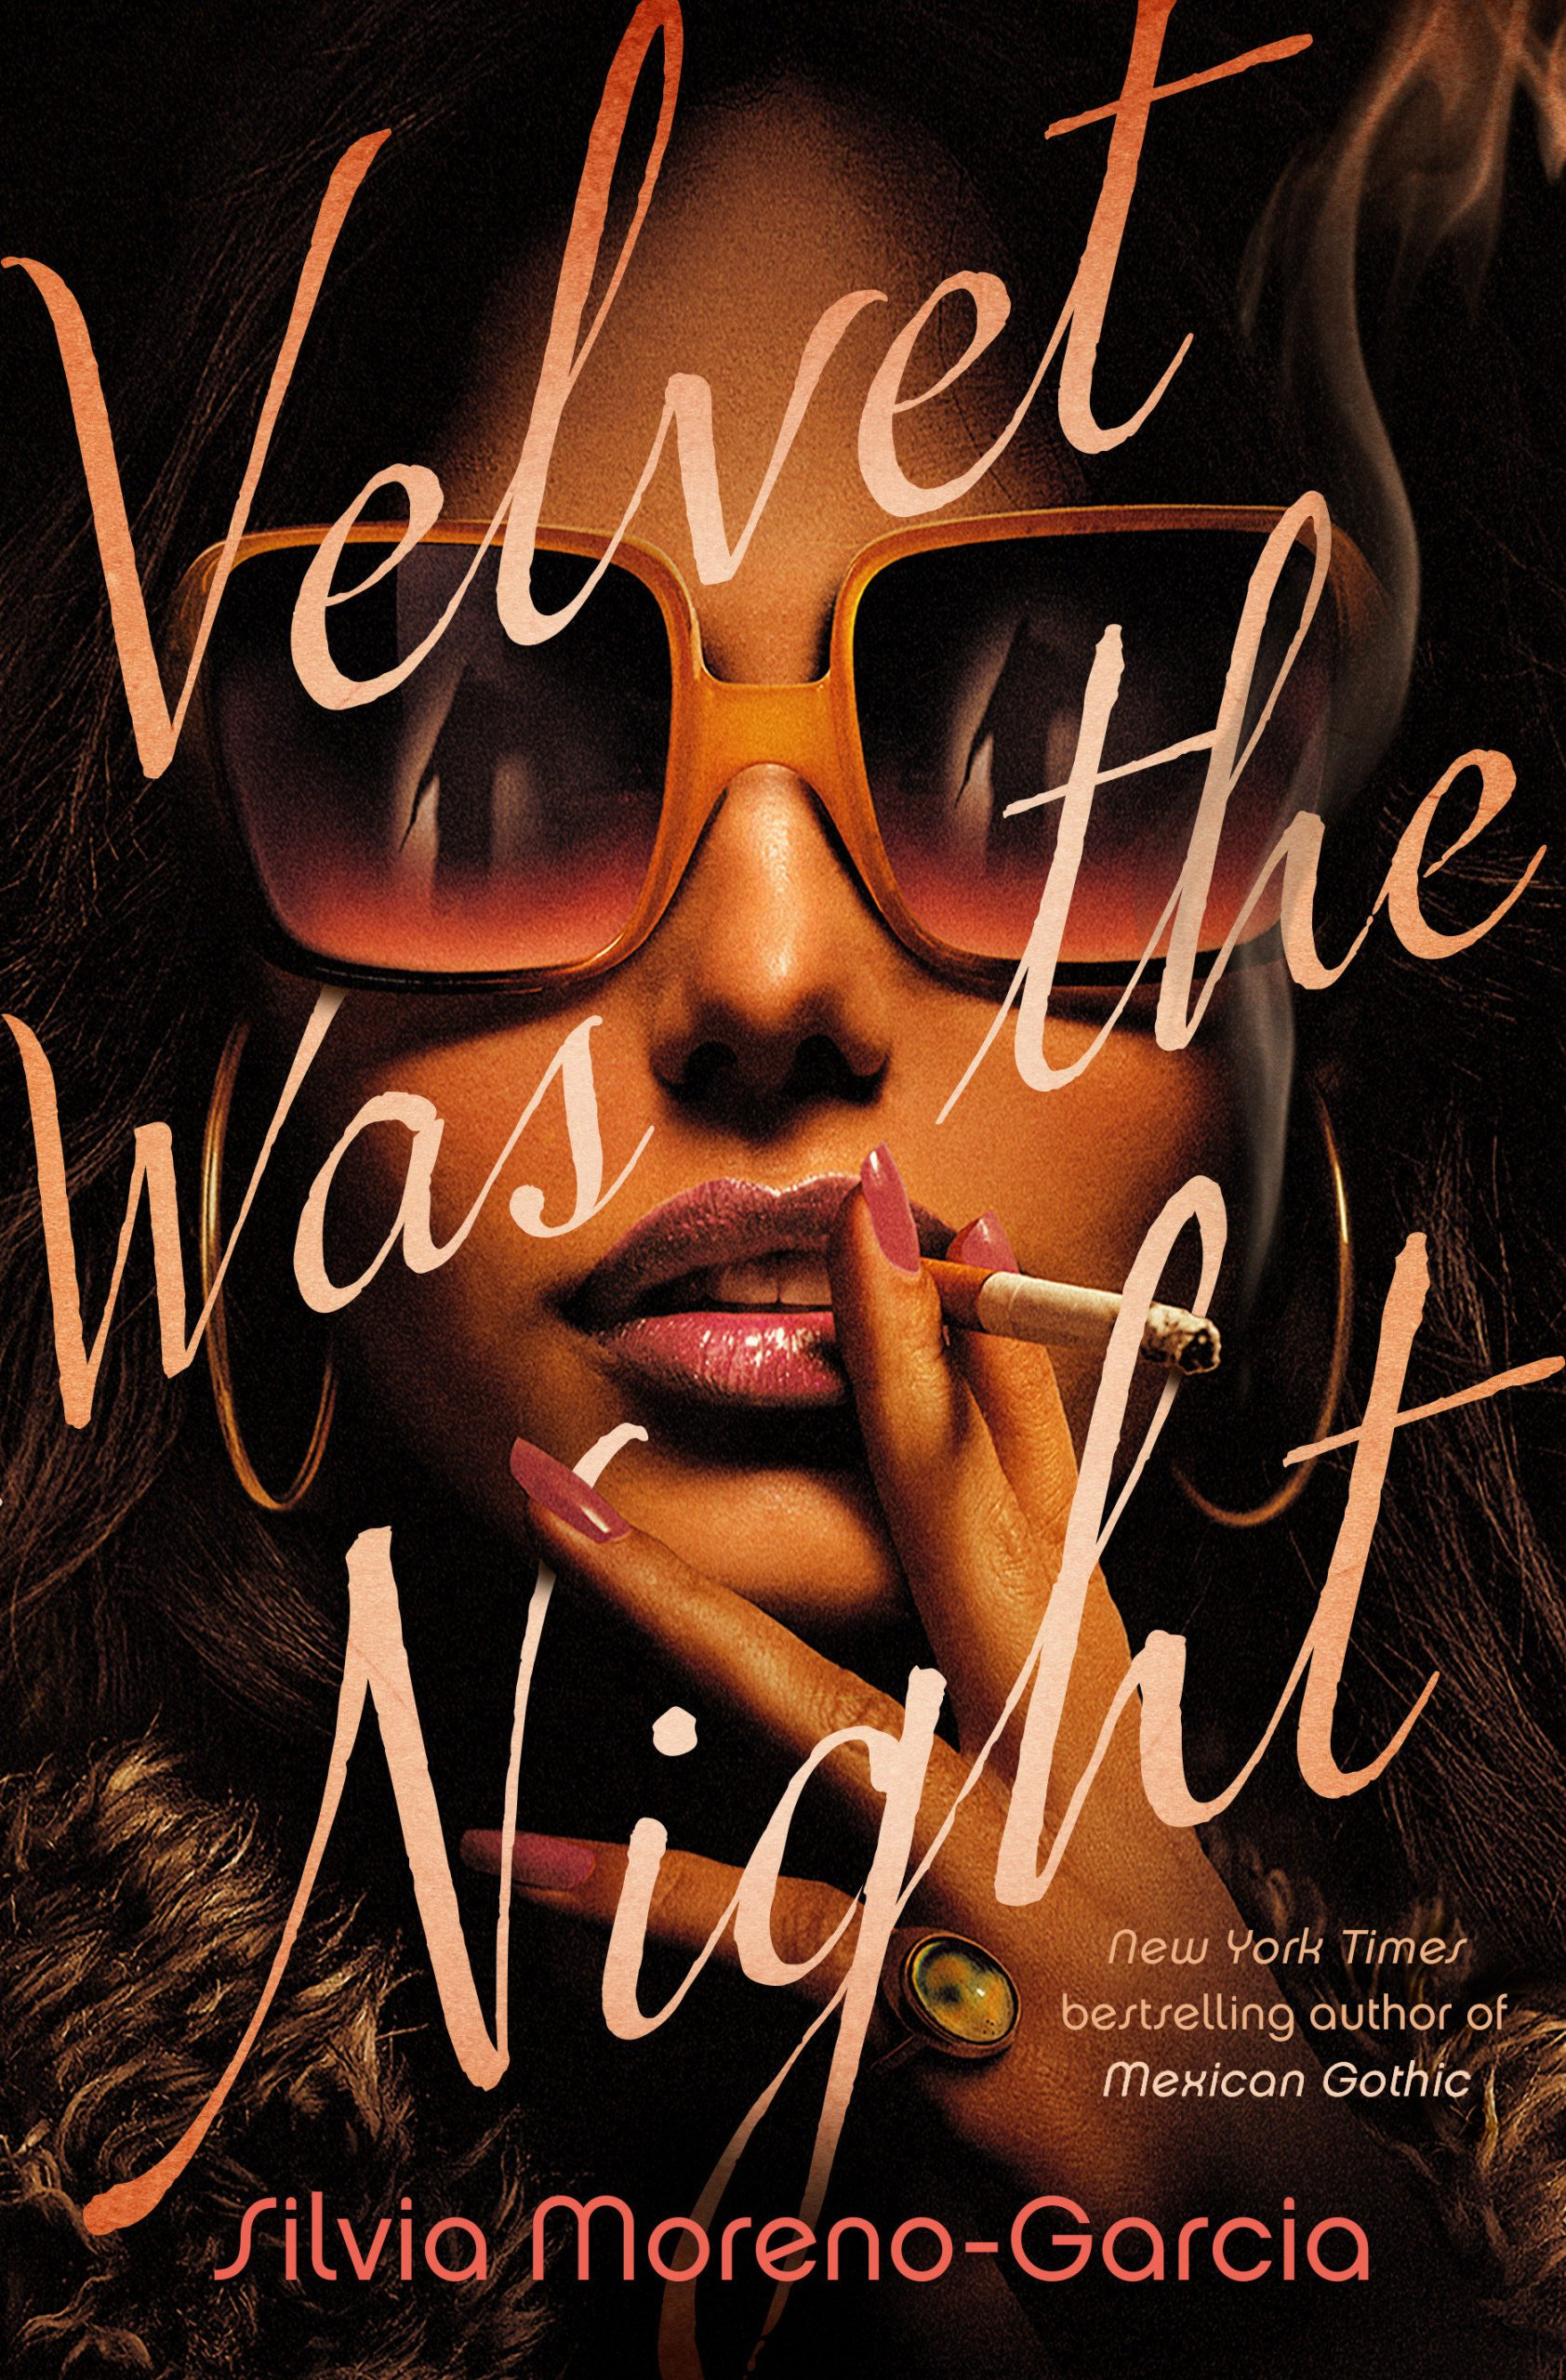 When Does Velvet Was The Night Release? Silvia Moreno-Garcia 2021 New Book